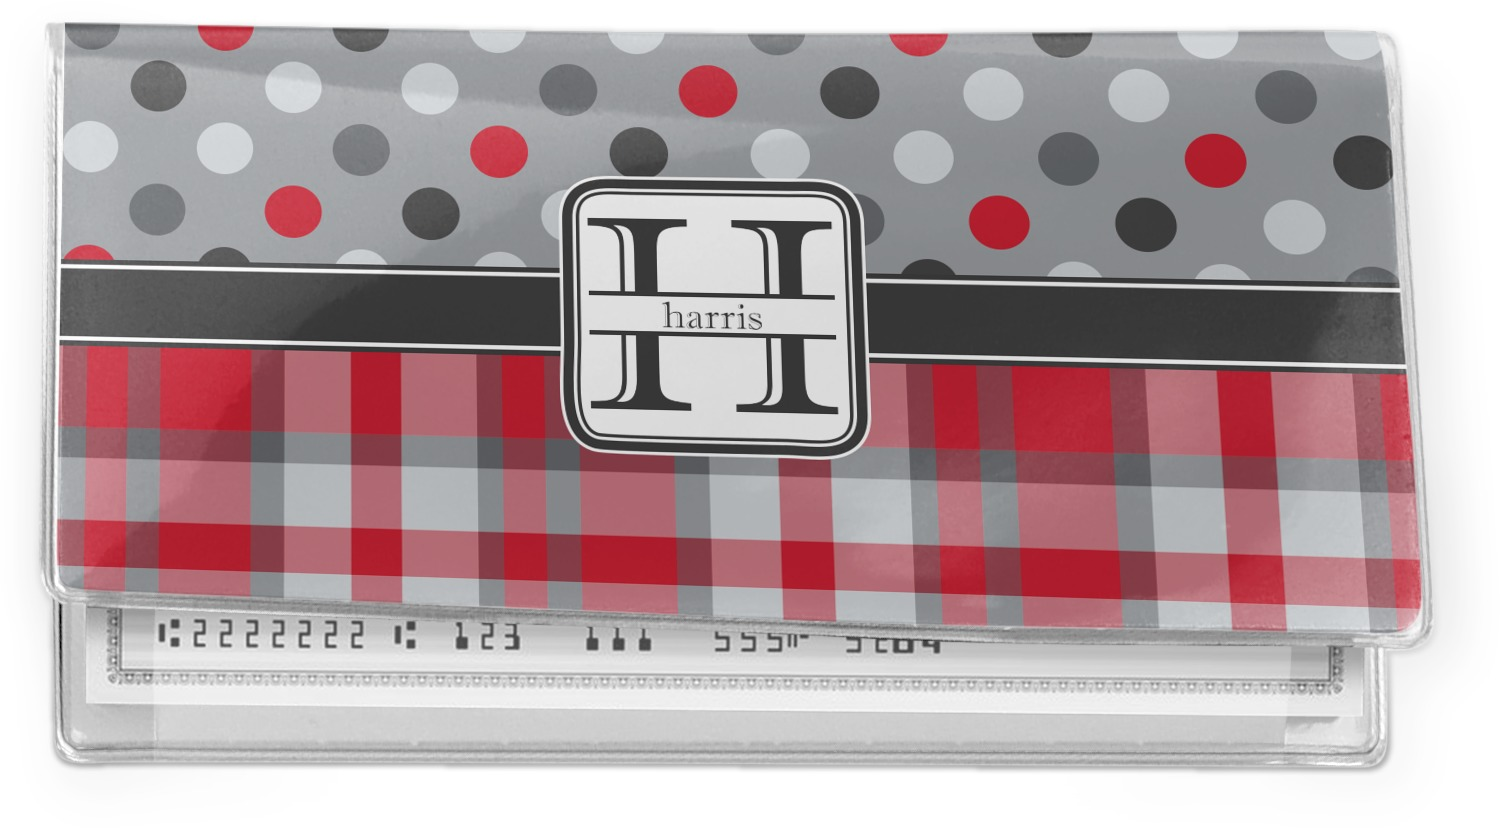 Cookbook Red Checkered Cover : Red gray dots and plaid vinyl check book cover